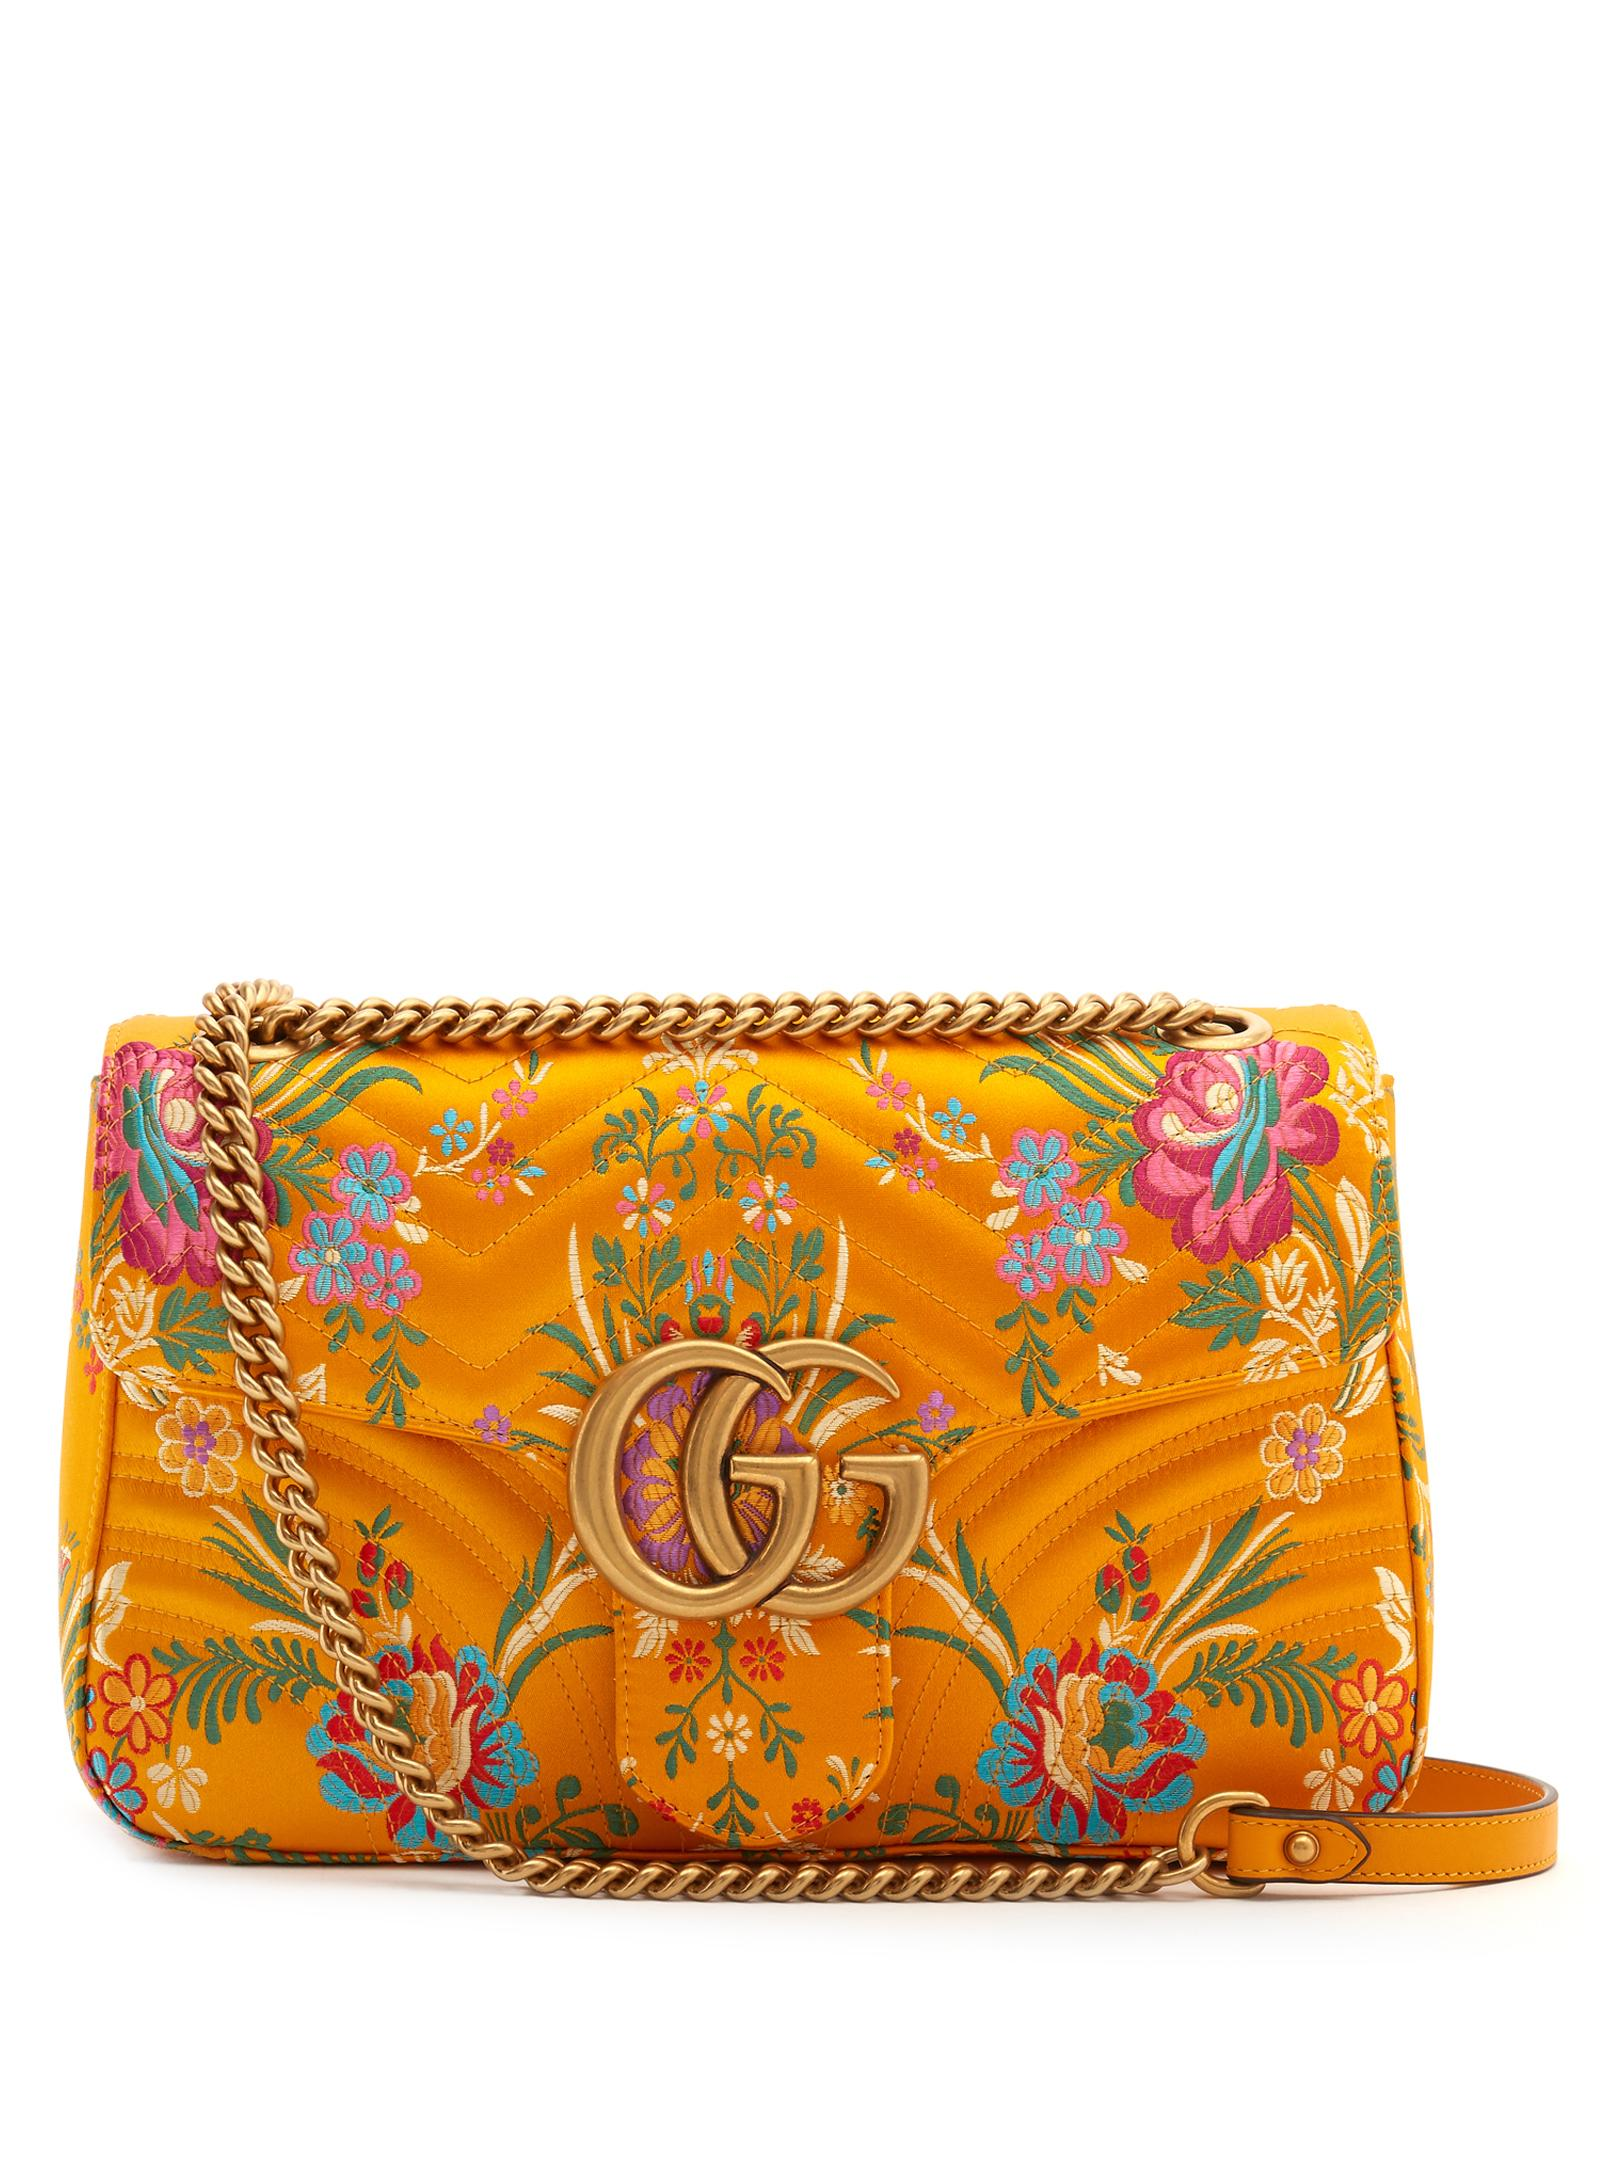 Lyst - Gucci Gg Marmont Floral-jacquard Shoulder Bag In Yellow